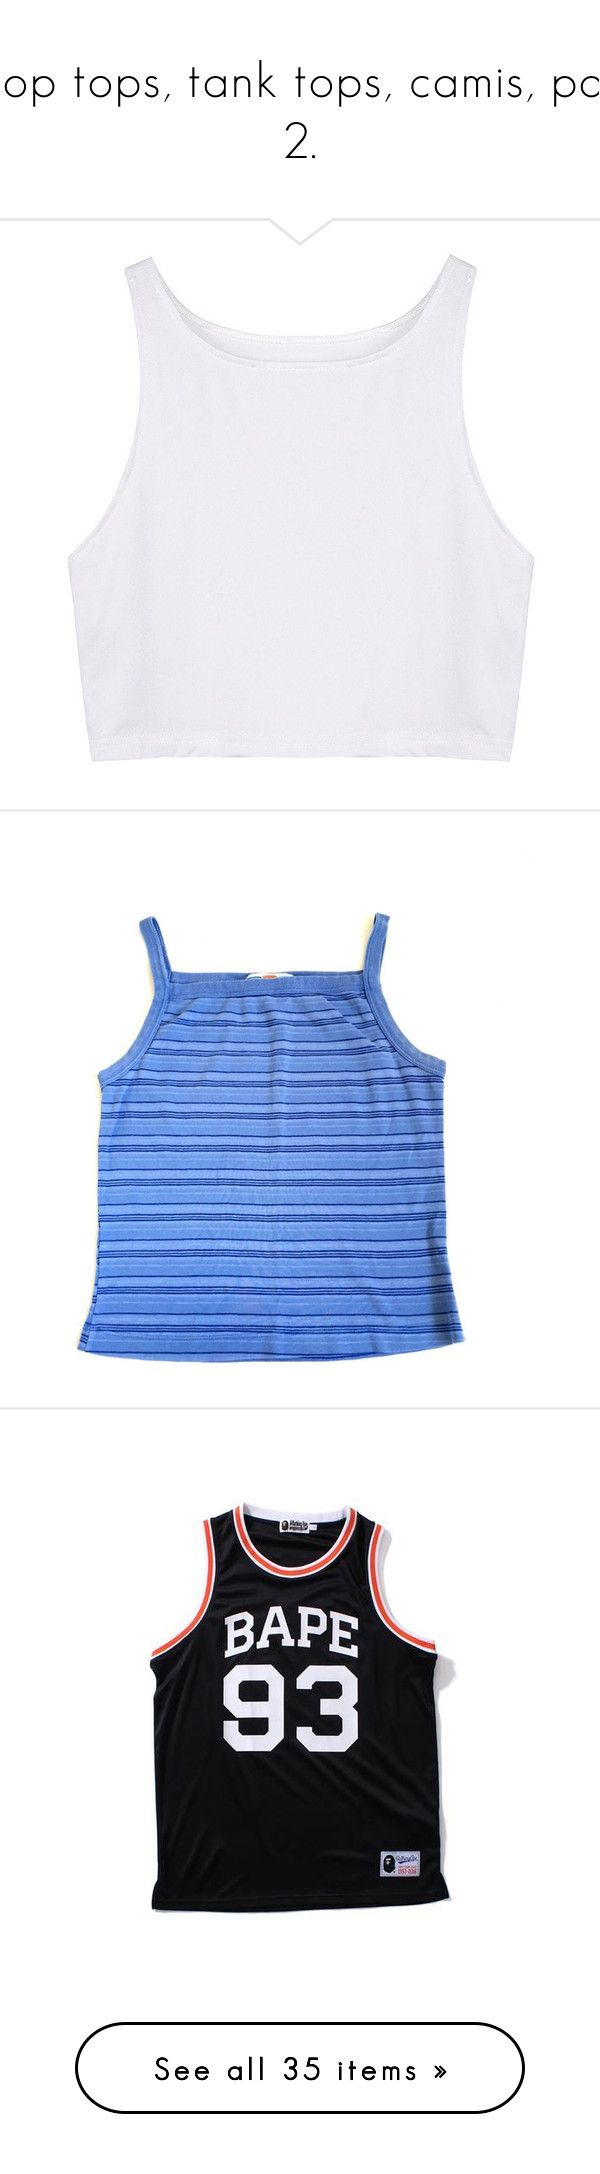 """""""crop tops, tank tops, camis, part 2."""" by trillestqueen ❤ liked on Polyvore featuring tops, crop top, shirts, crop tank, no sleeve shirt, cropped shirts, print shirts, collared shirt, strappy top and stripe top"""